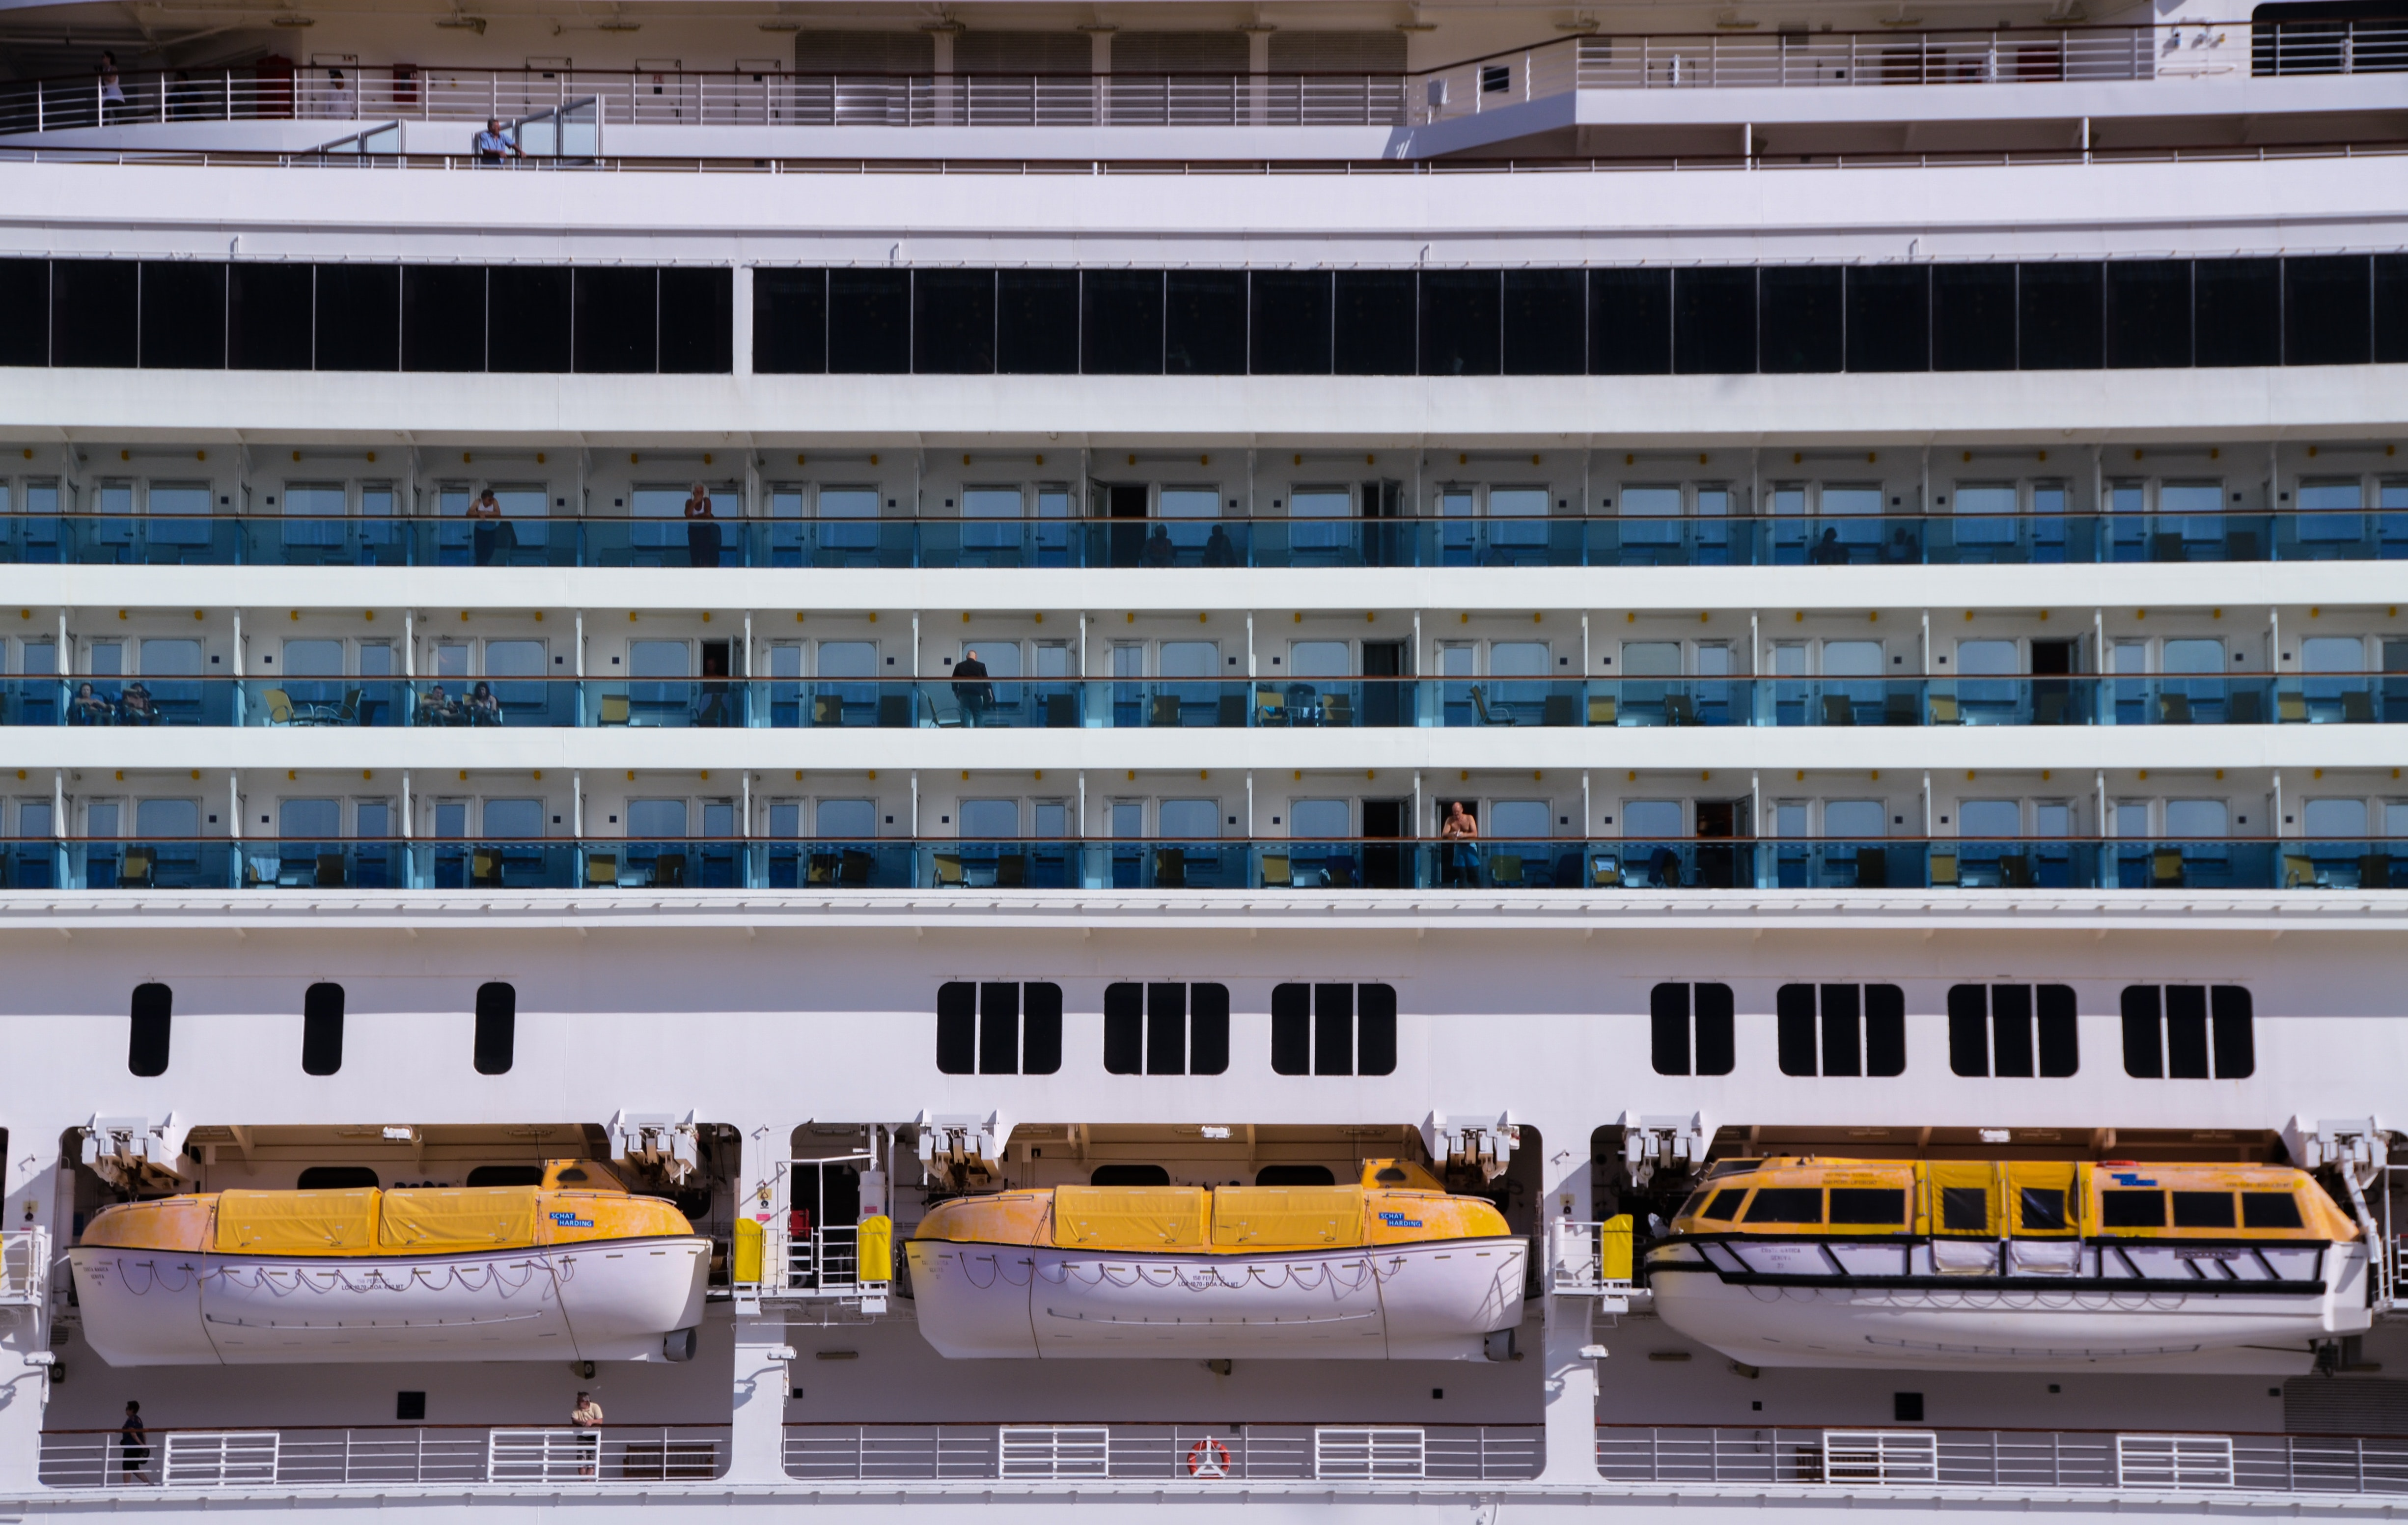 boats-business-city-cruise-352593